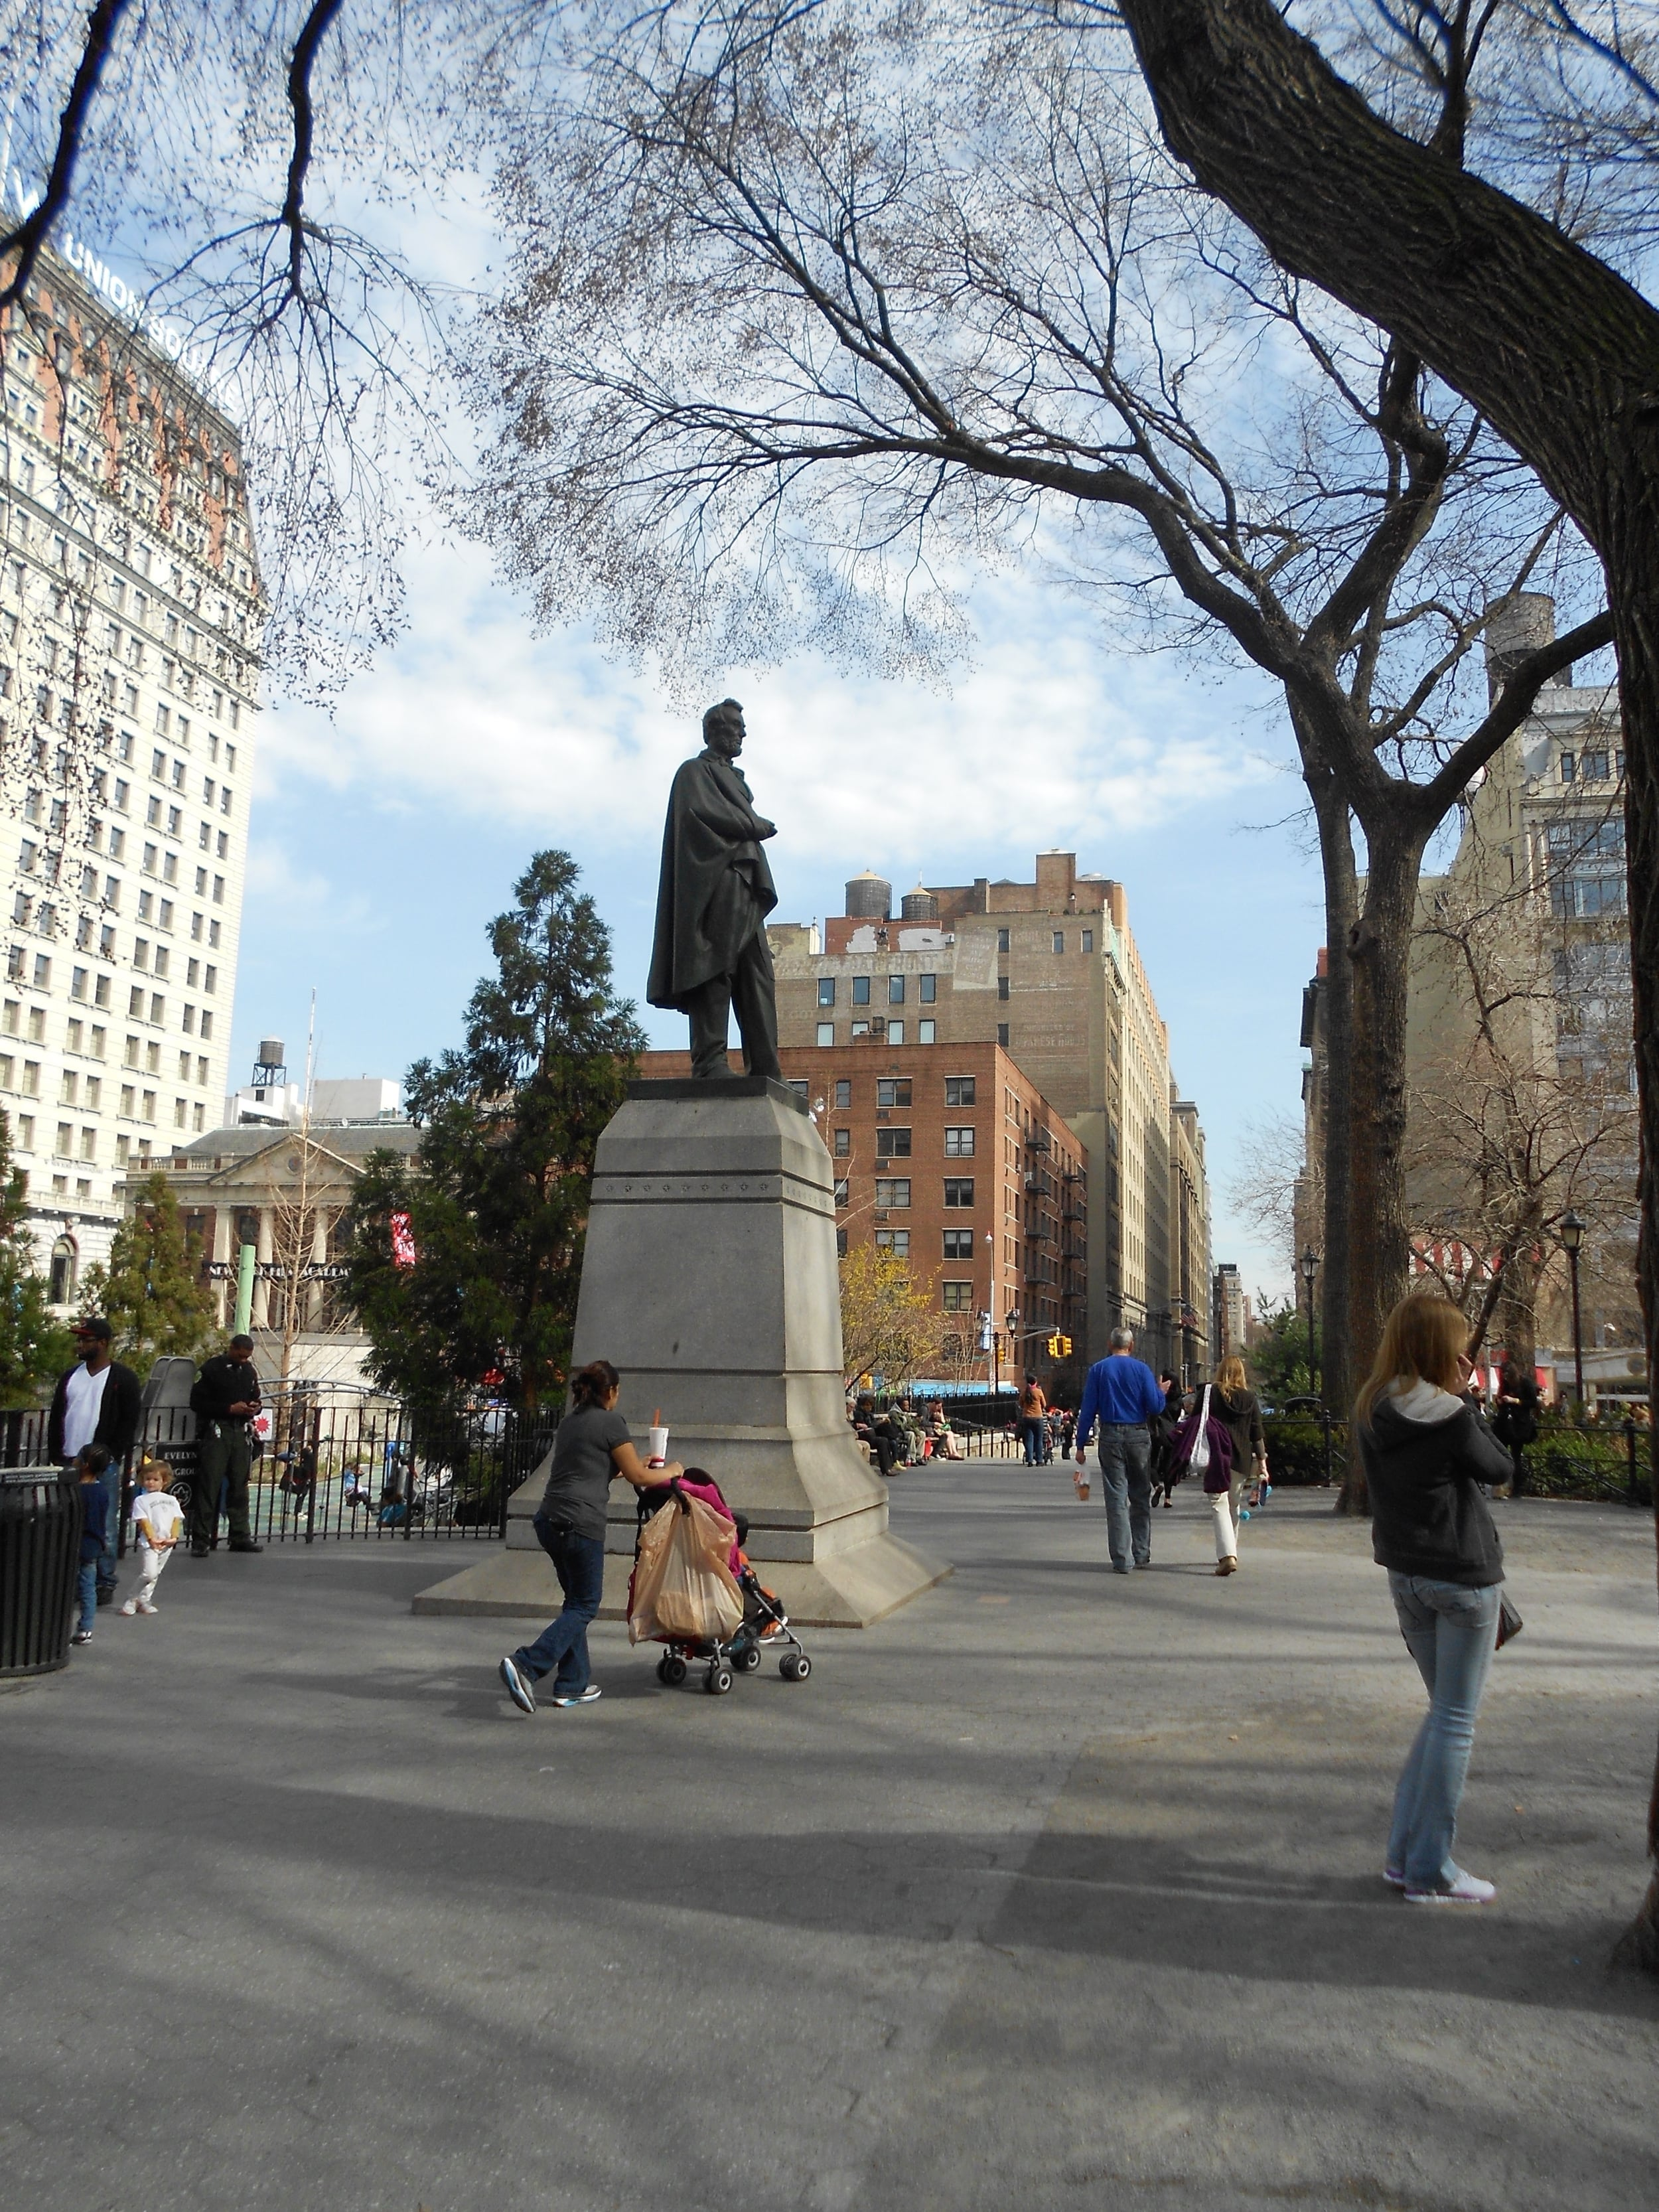 Photo taken by the author, in New York City